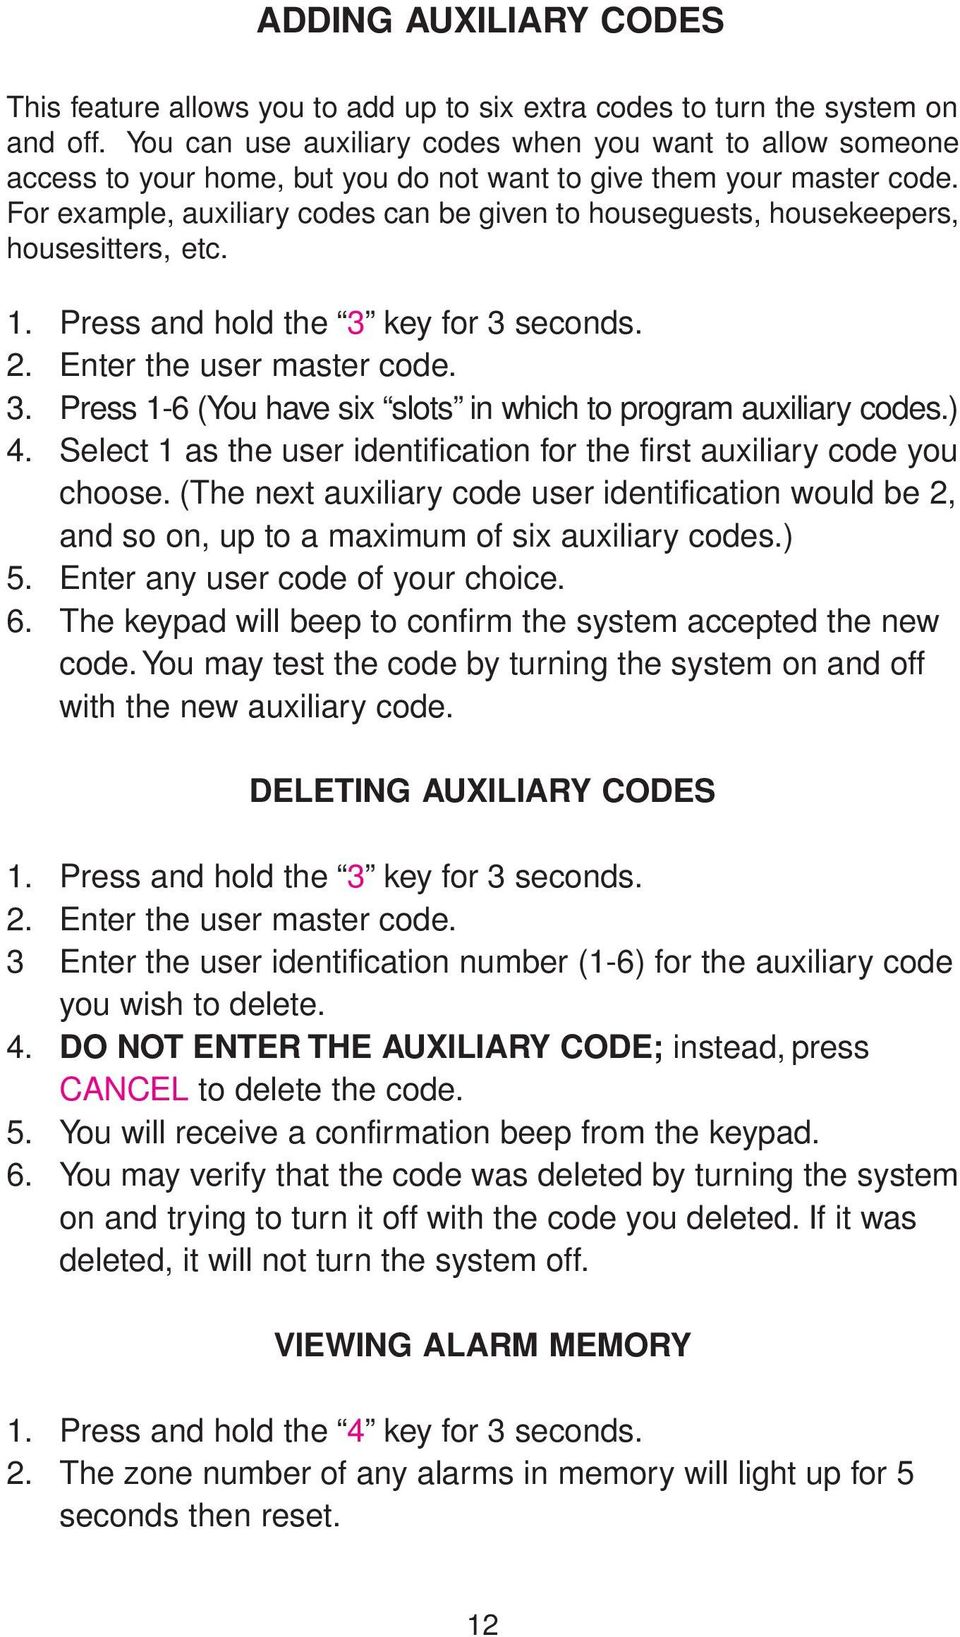 For example, auxiliary codes can be given to houseguests, housekeepers, housesitters, etc. 1. Press and hold the 3 key for 3 seconds. 2. Enter the user master code. 3. Press 1-6 (You have six slots in which to program auxiliary codes.